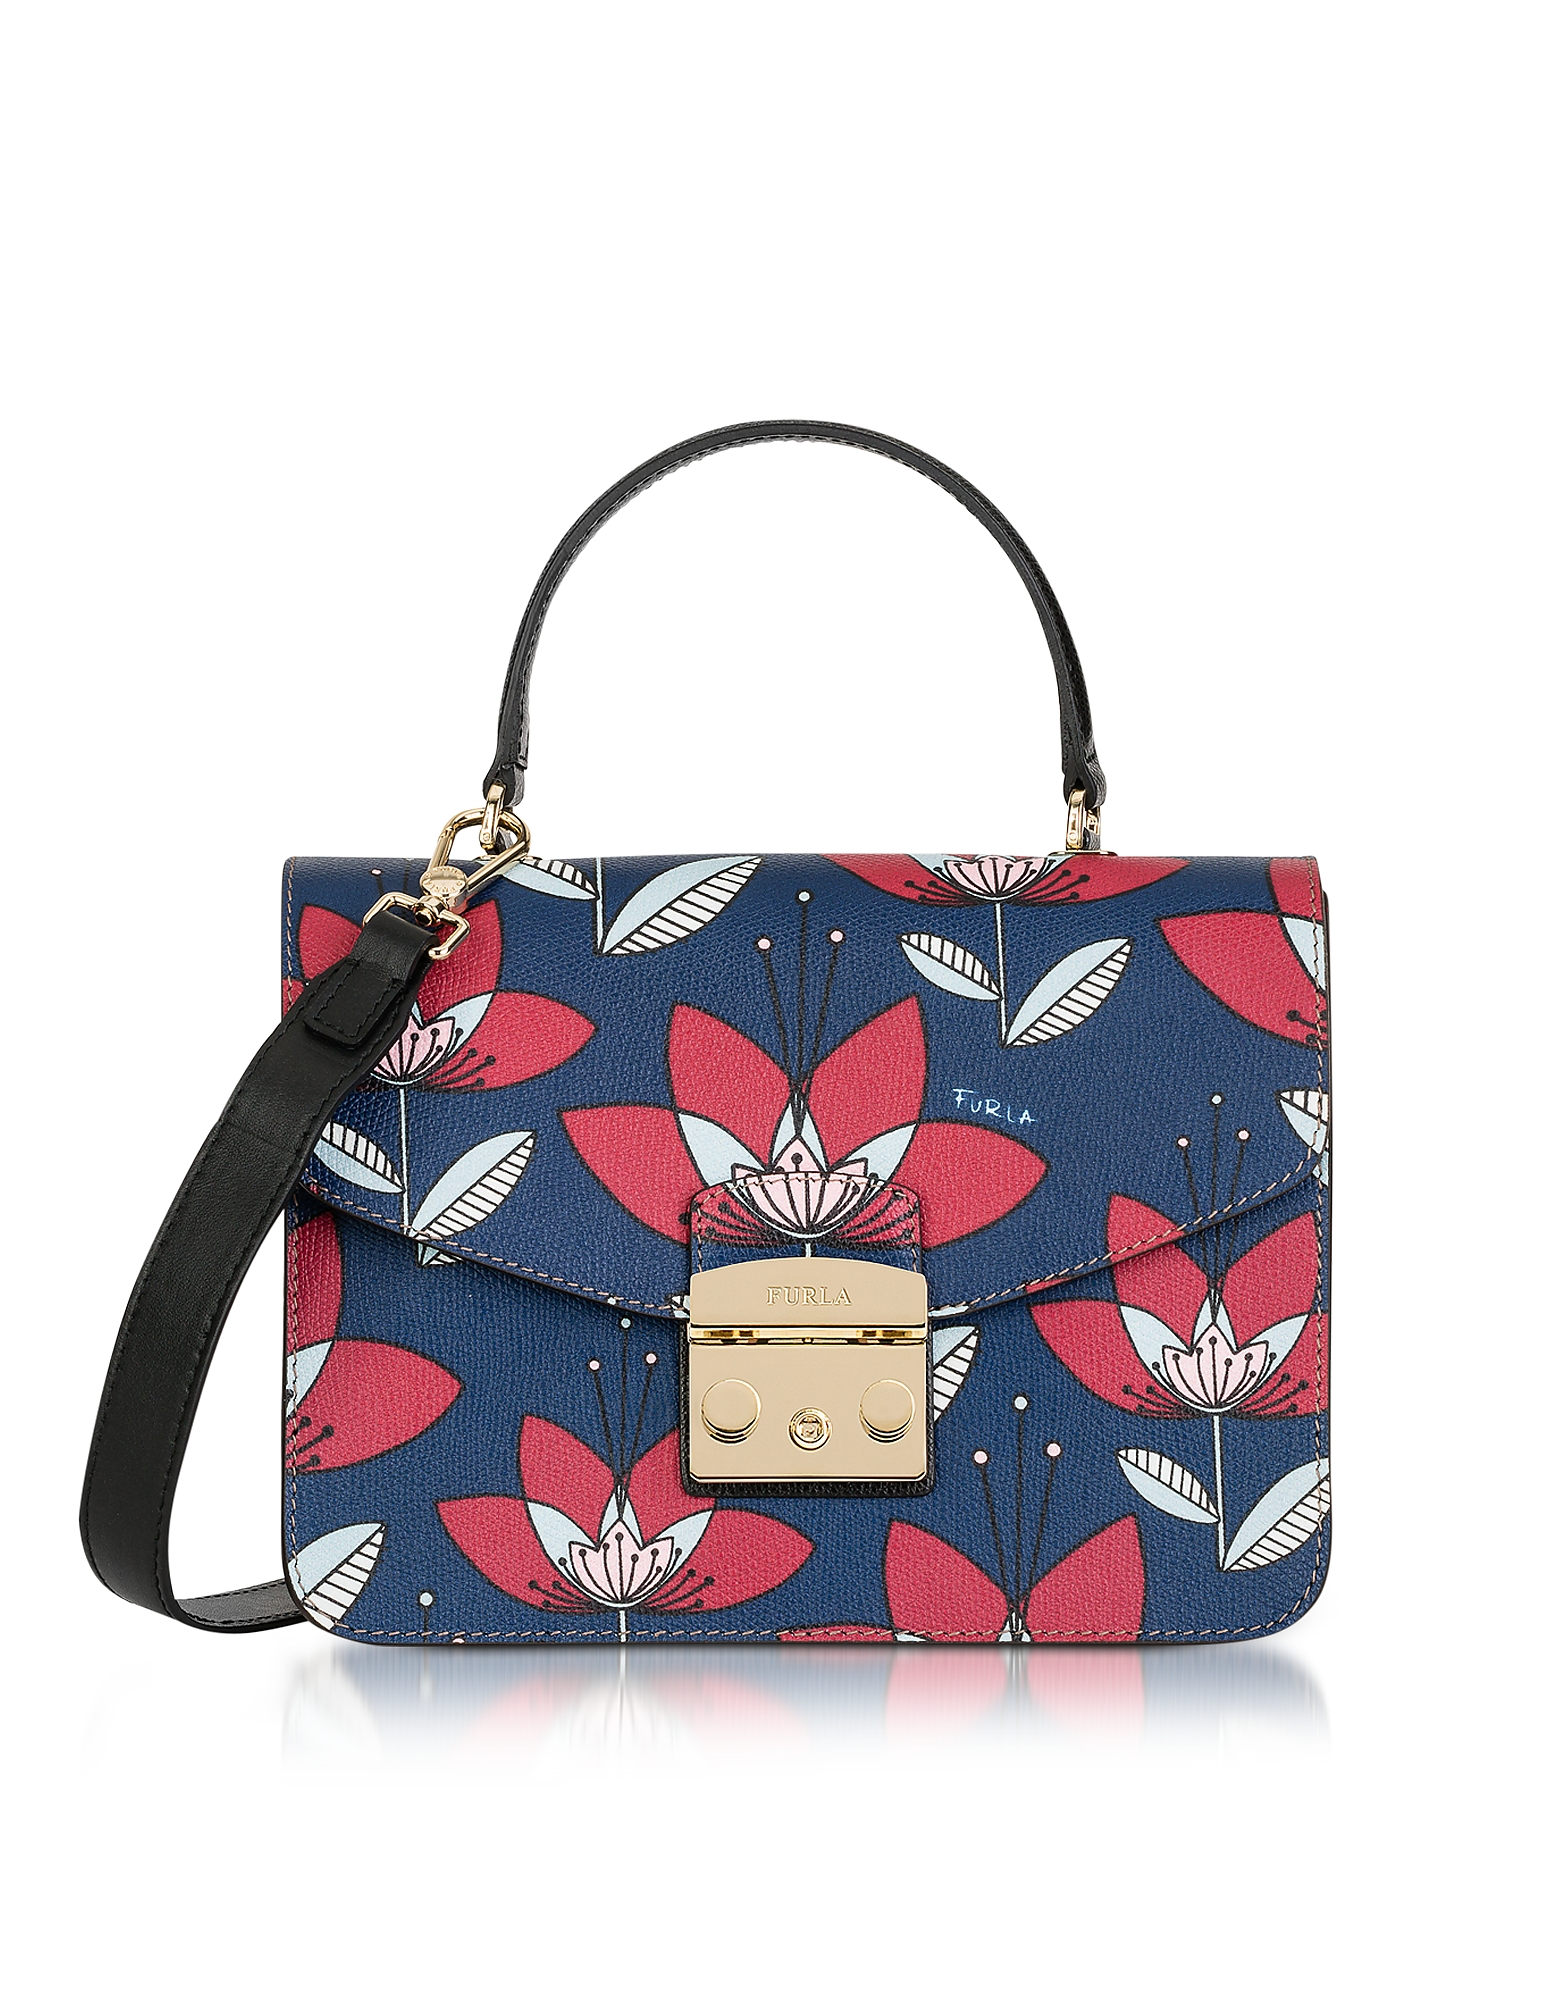 Furla Handbags, Floral Printed Blue Leather Metropolis S Top Handle Bag